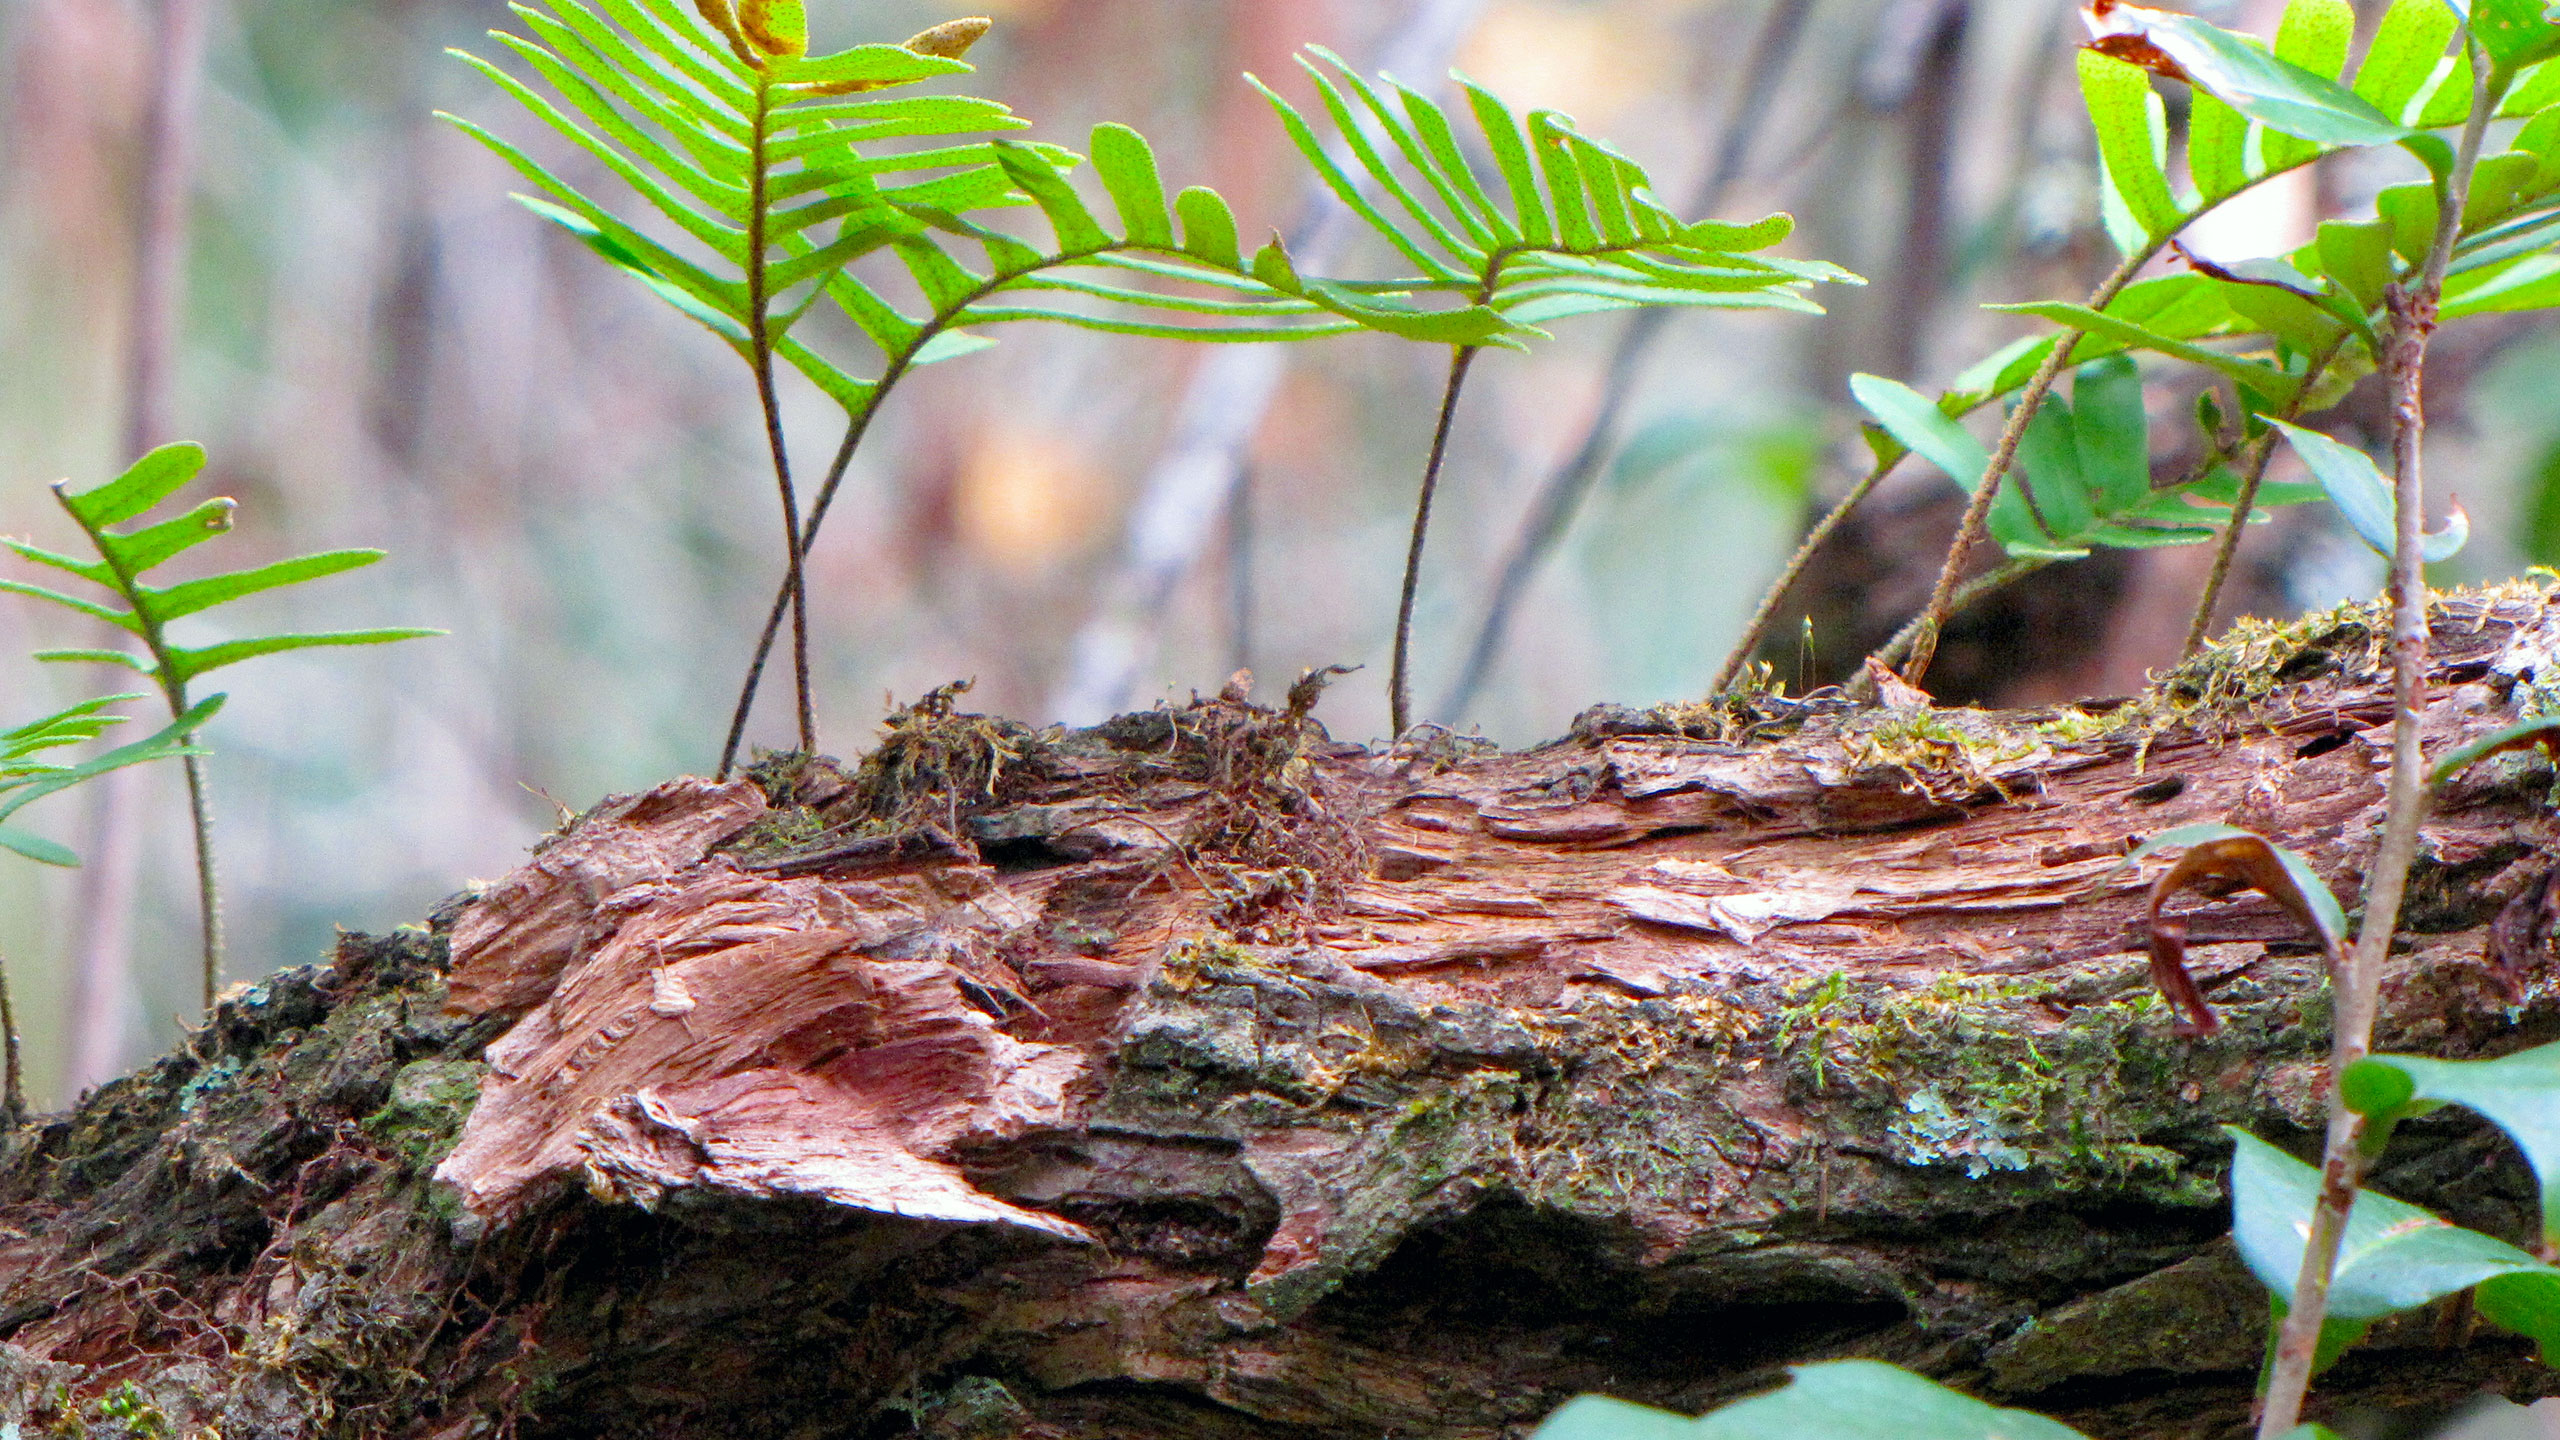 Resurrection ferns growing out of a dead tree